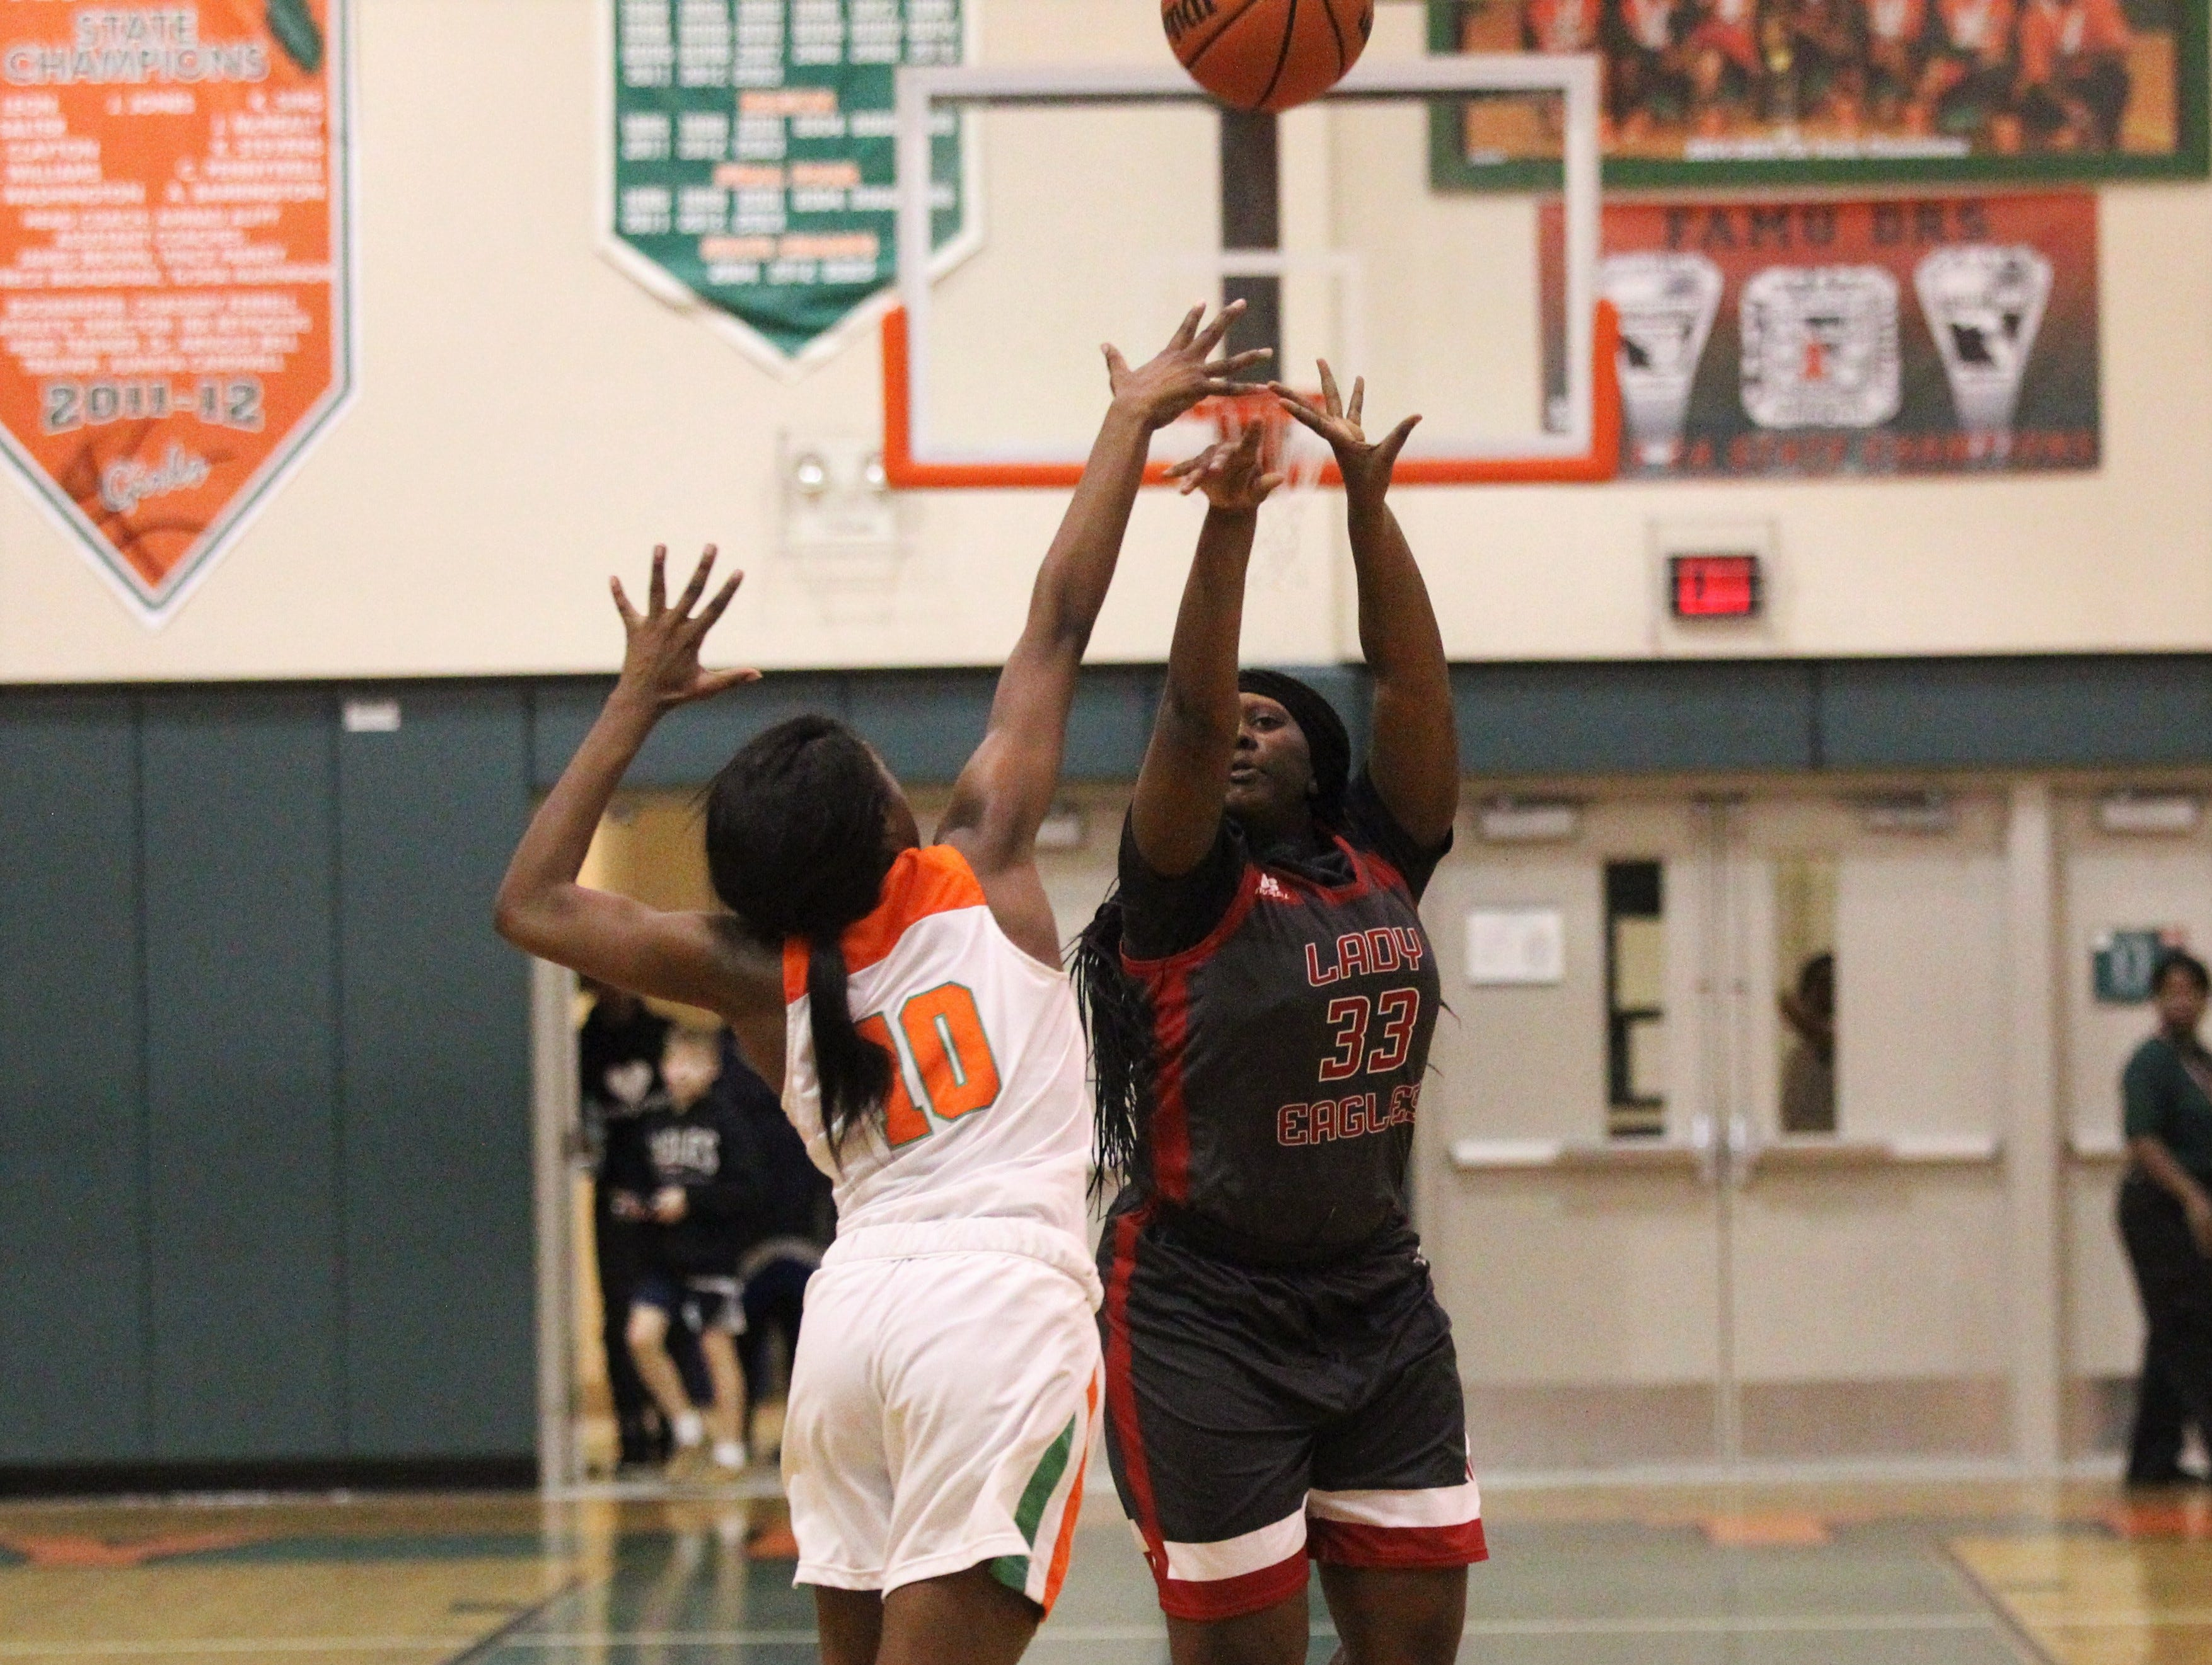 NFC sophomore Elizabeth Kever shoots a 3-pointer as FAMU DRS' girls basketball team beat NFC 59-41 for a District 1-3A title on Jan. 7, 2019.